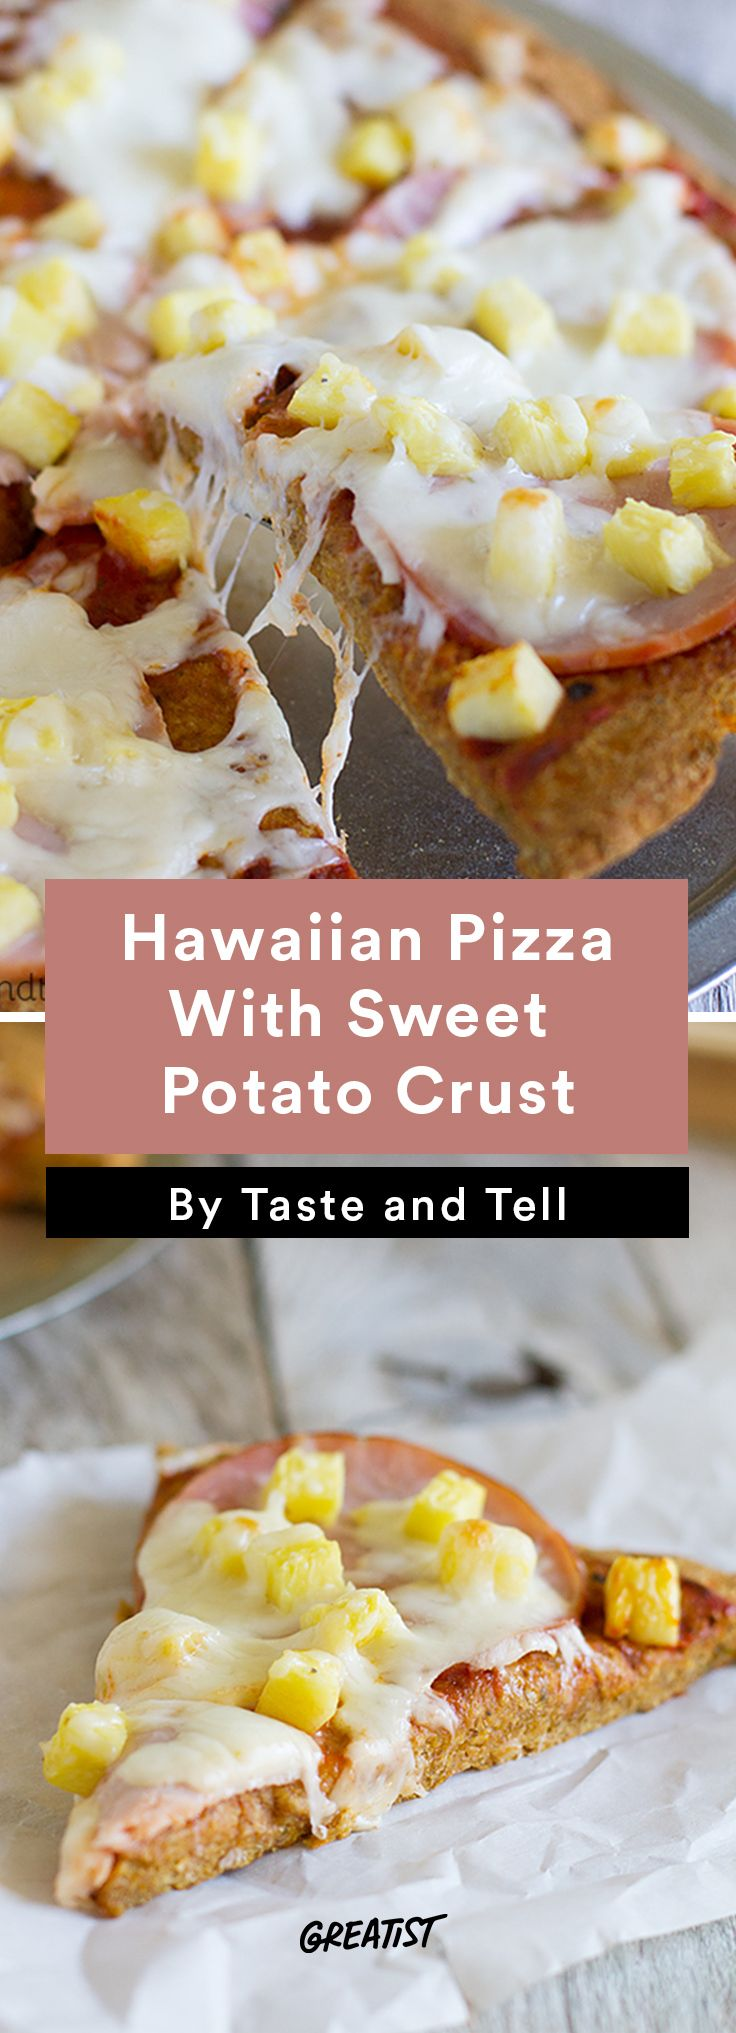 8. Hawaiian Pizza With Sweet Potato Crust  #healthy #pizza #recipes http://greatist.com/eat/healthier-pizza-recipes-better-than-delivery